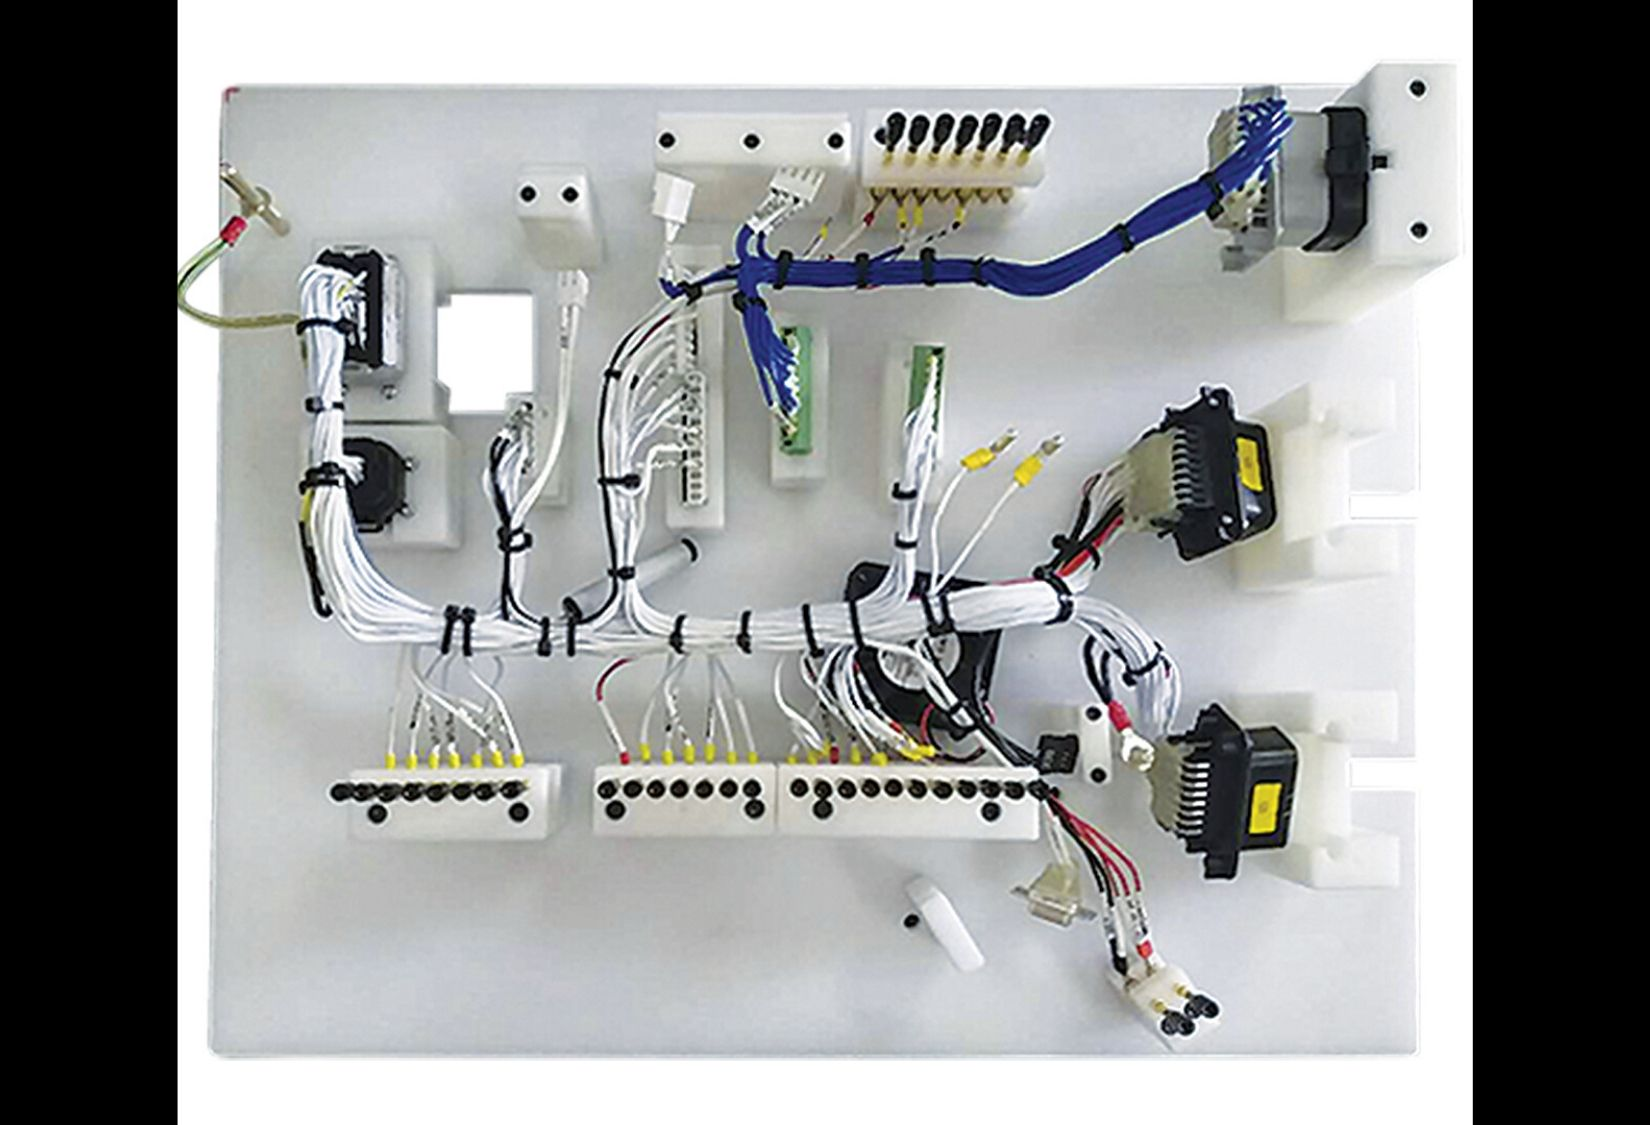 Harness assembled in master controller used in 1140V Intelligent combination variable frequency starter for mining.